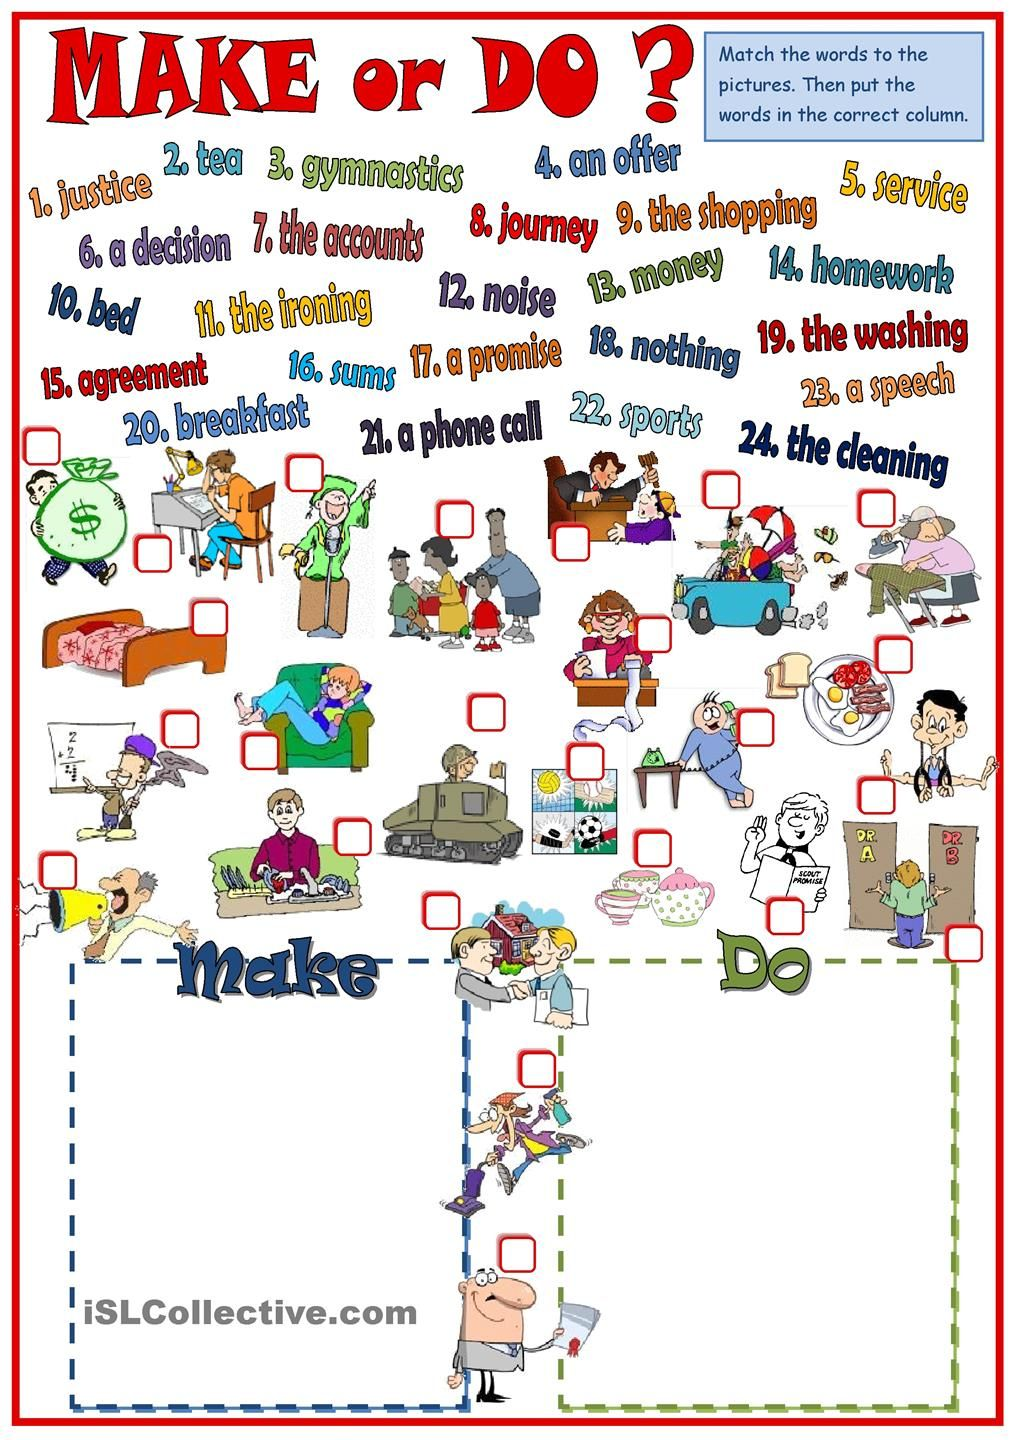 Make or Do - collocations | english | Pinterest | English ...